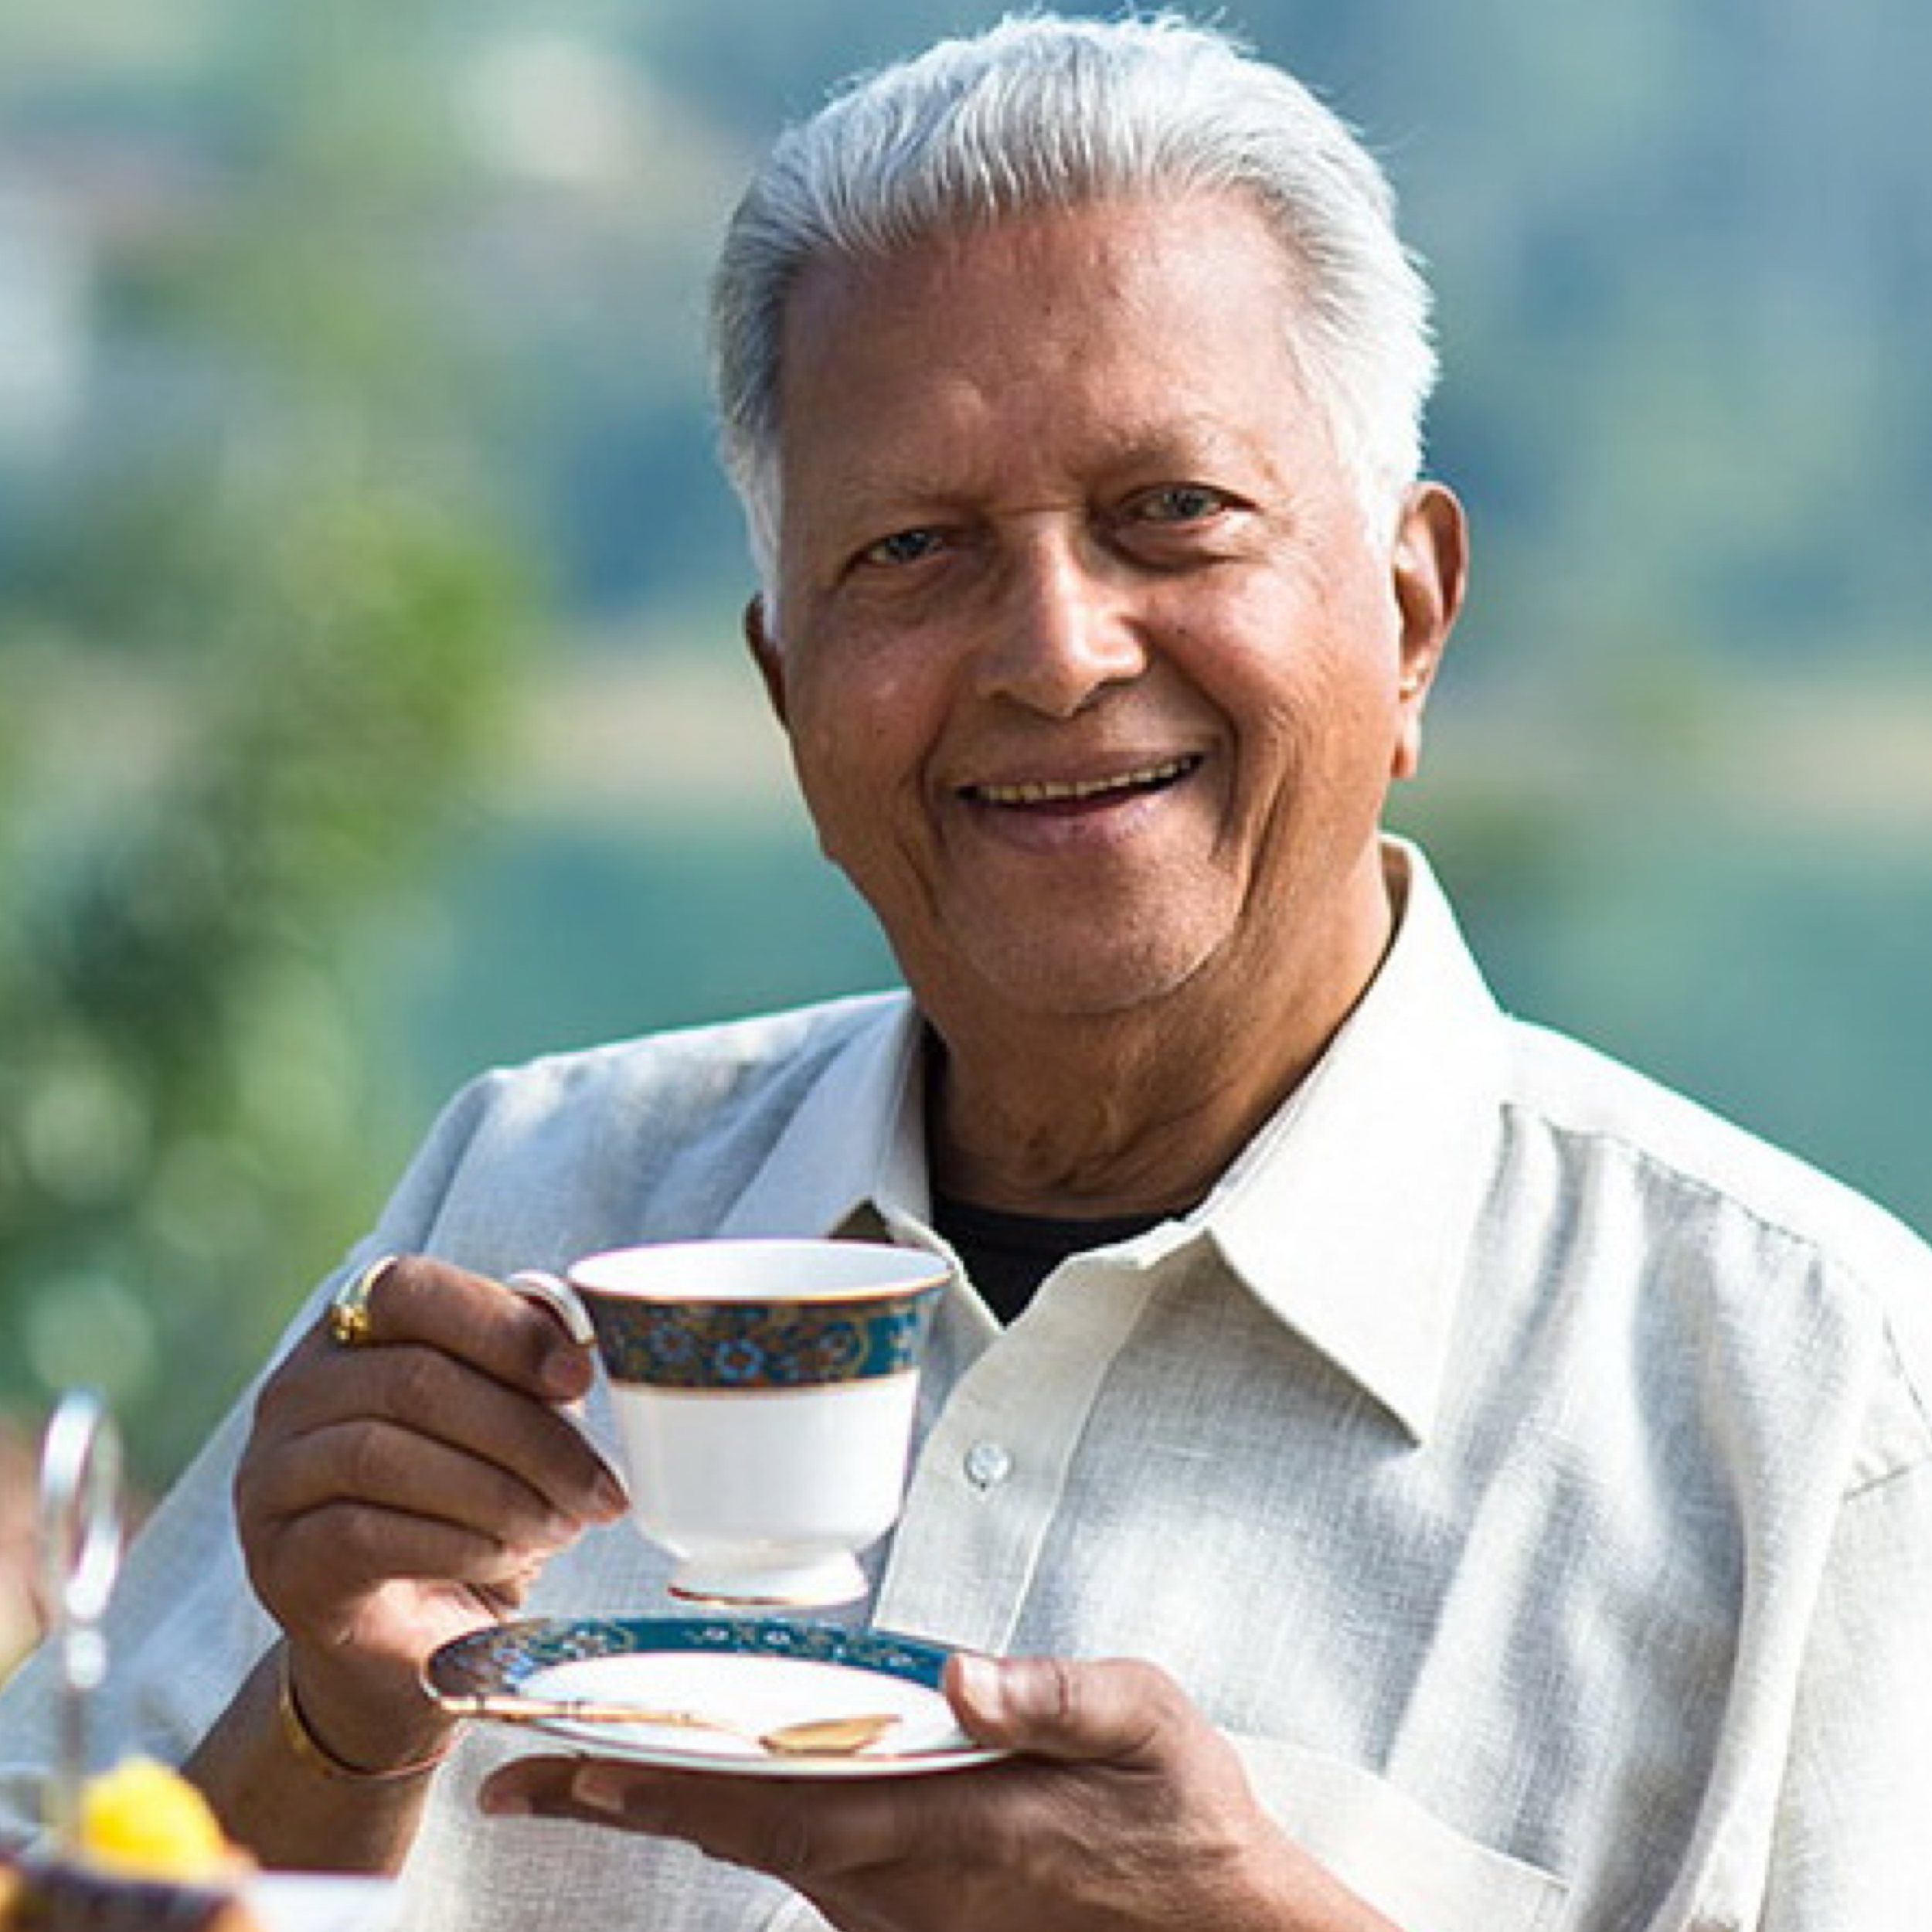 Merrill Joseph Fernando   An entrepreneur who overcame impossible odds to build a global ethical tea business